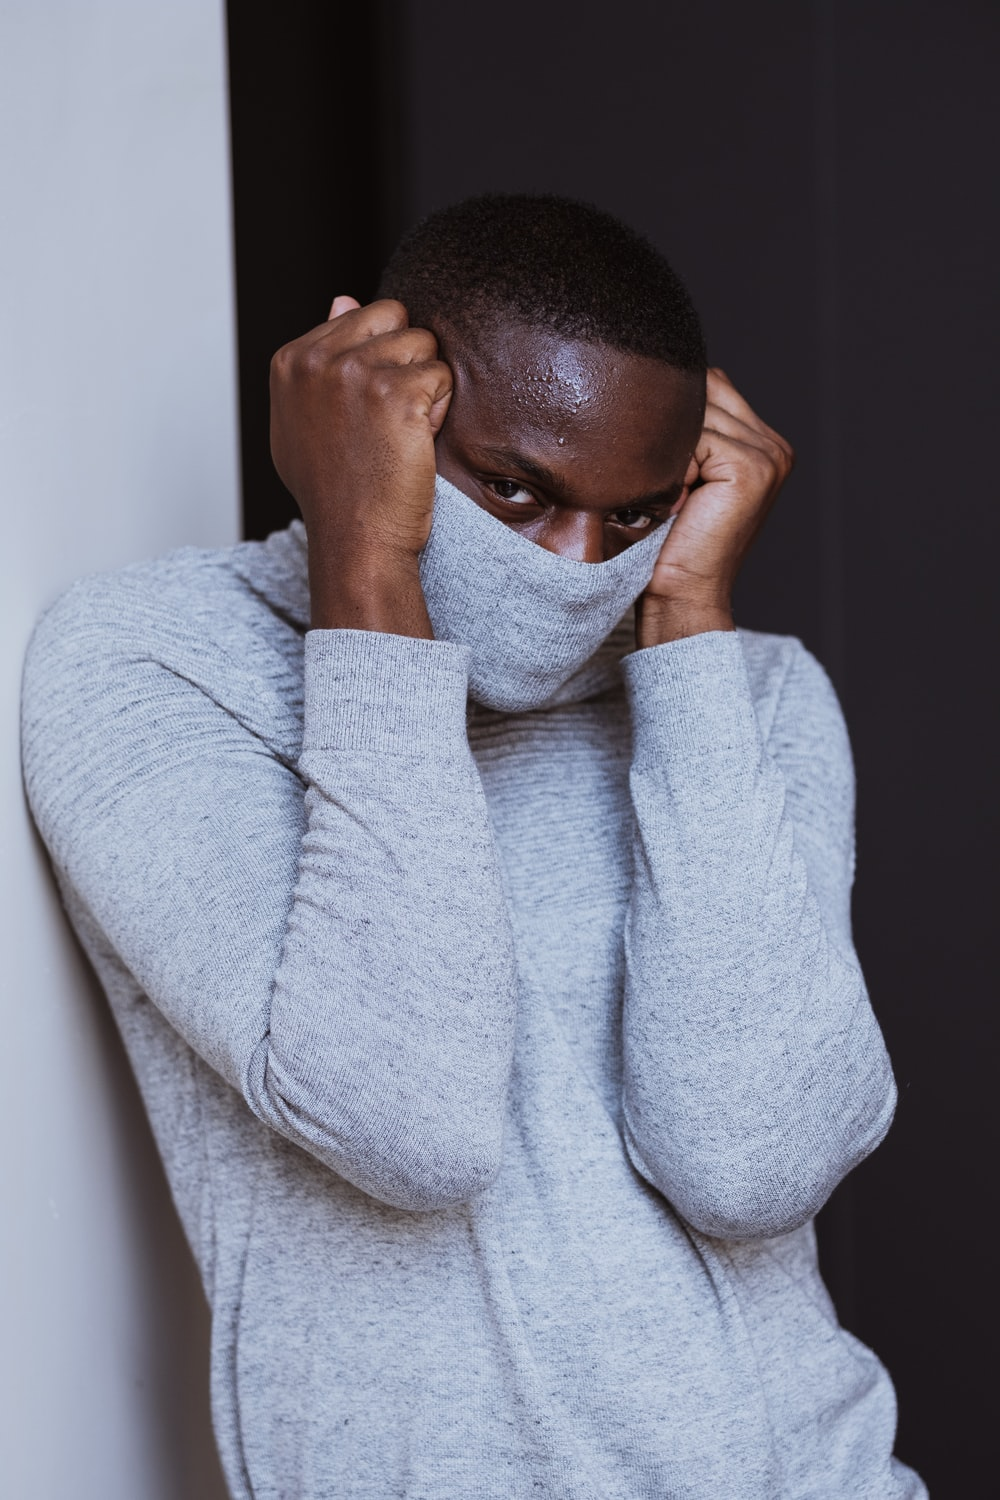 woman in gray sweater covering face with both hands